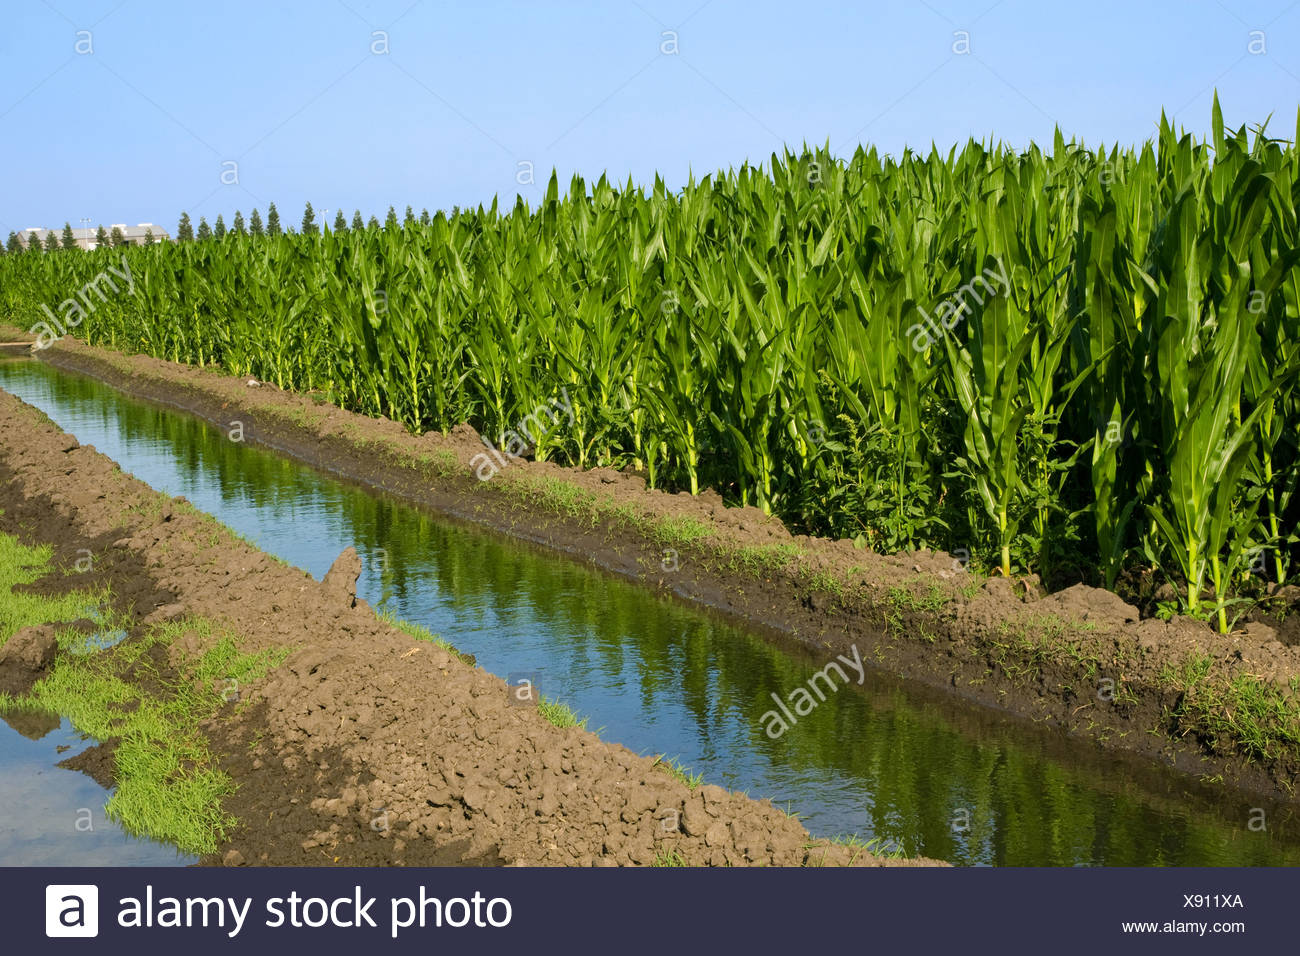 Agricultural Irrigation Canal : Irrigation canal green plants stock photos